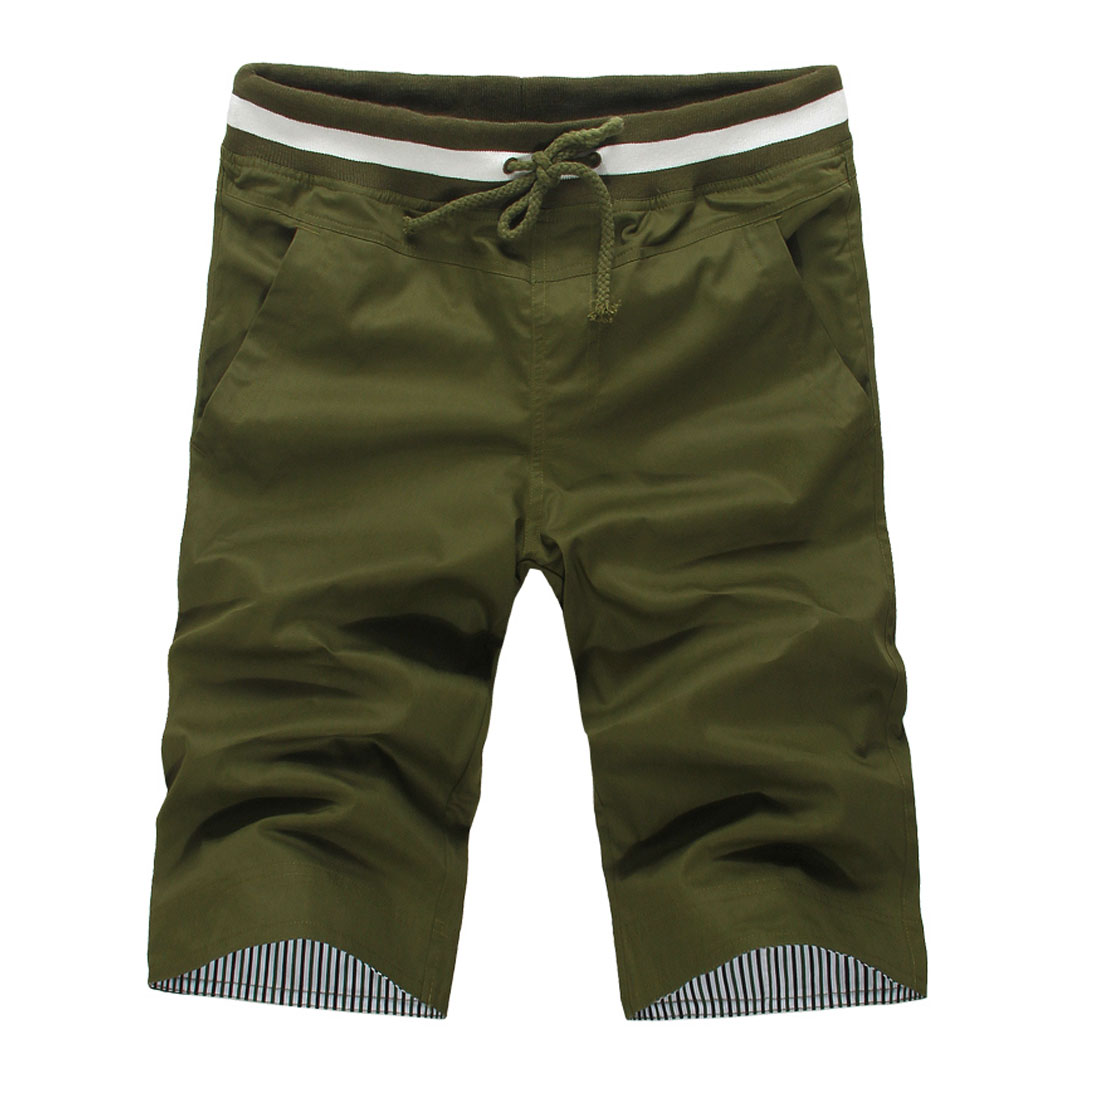 Men Big Pockets Stretchy Adjustable Drawstring Pants Army Green W31